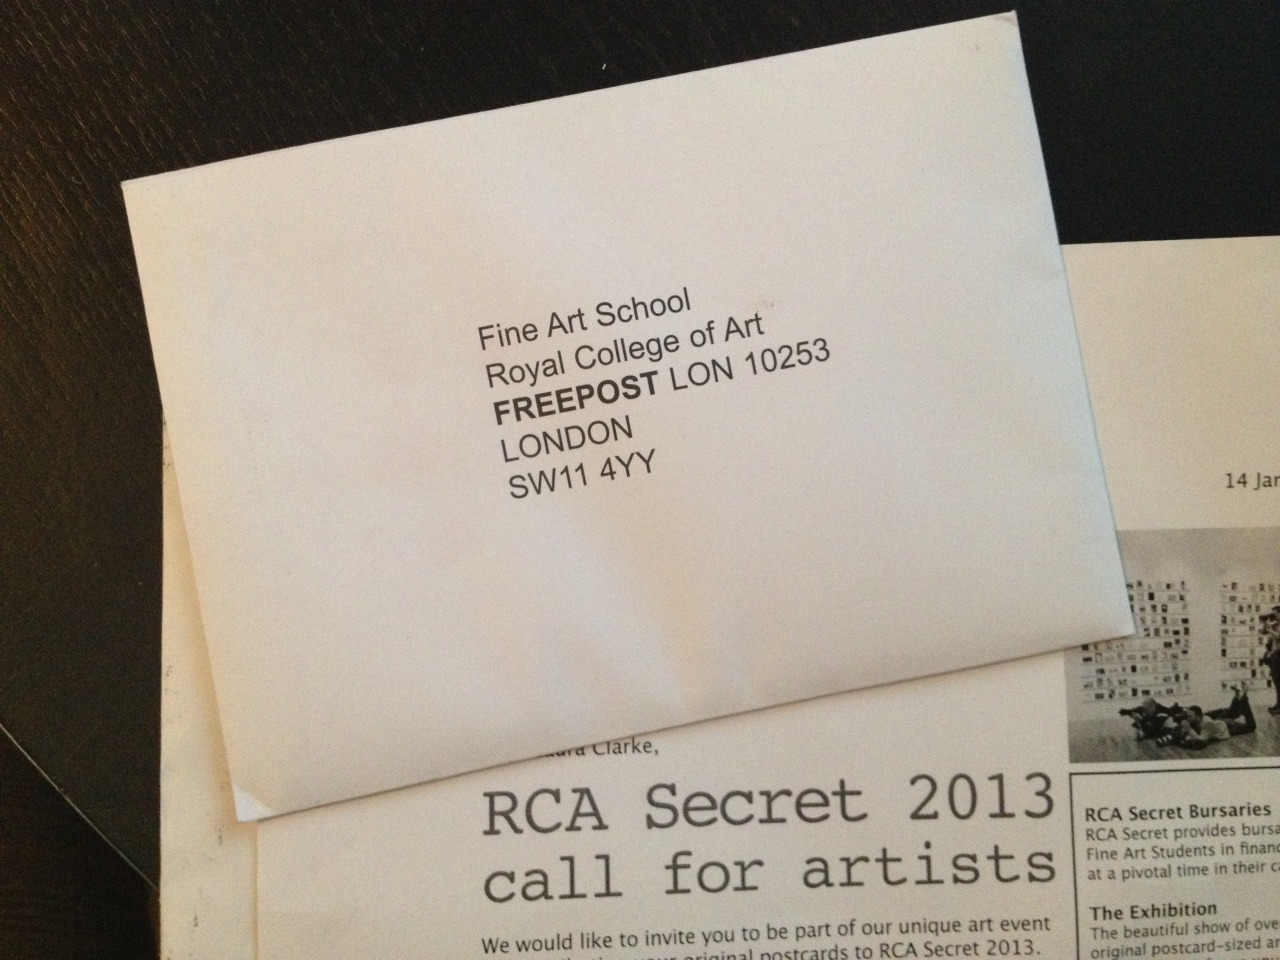 Shhhhhhhh the RCA Secret is almost here! I've got mine ready to post, but you'll have to try and spot them at the exhibition! Open from the 14th - 22nd of March!